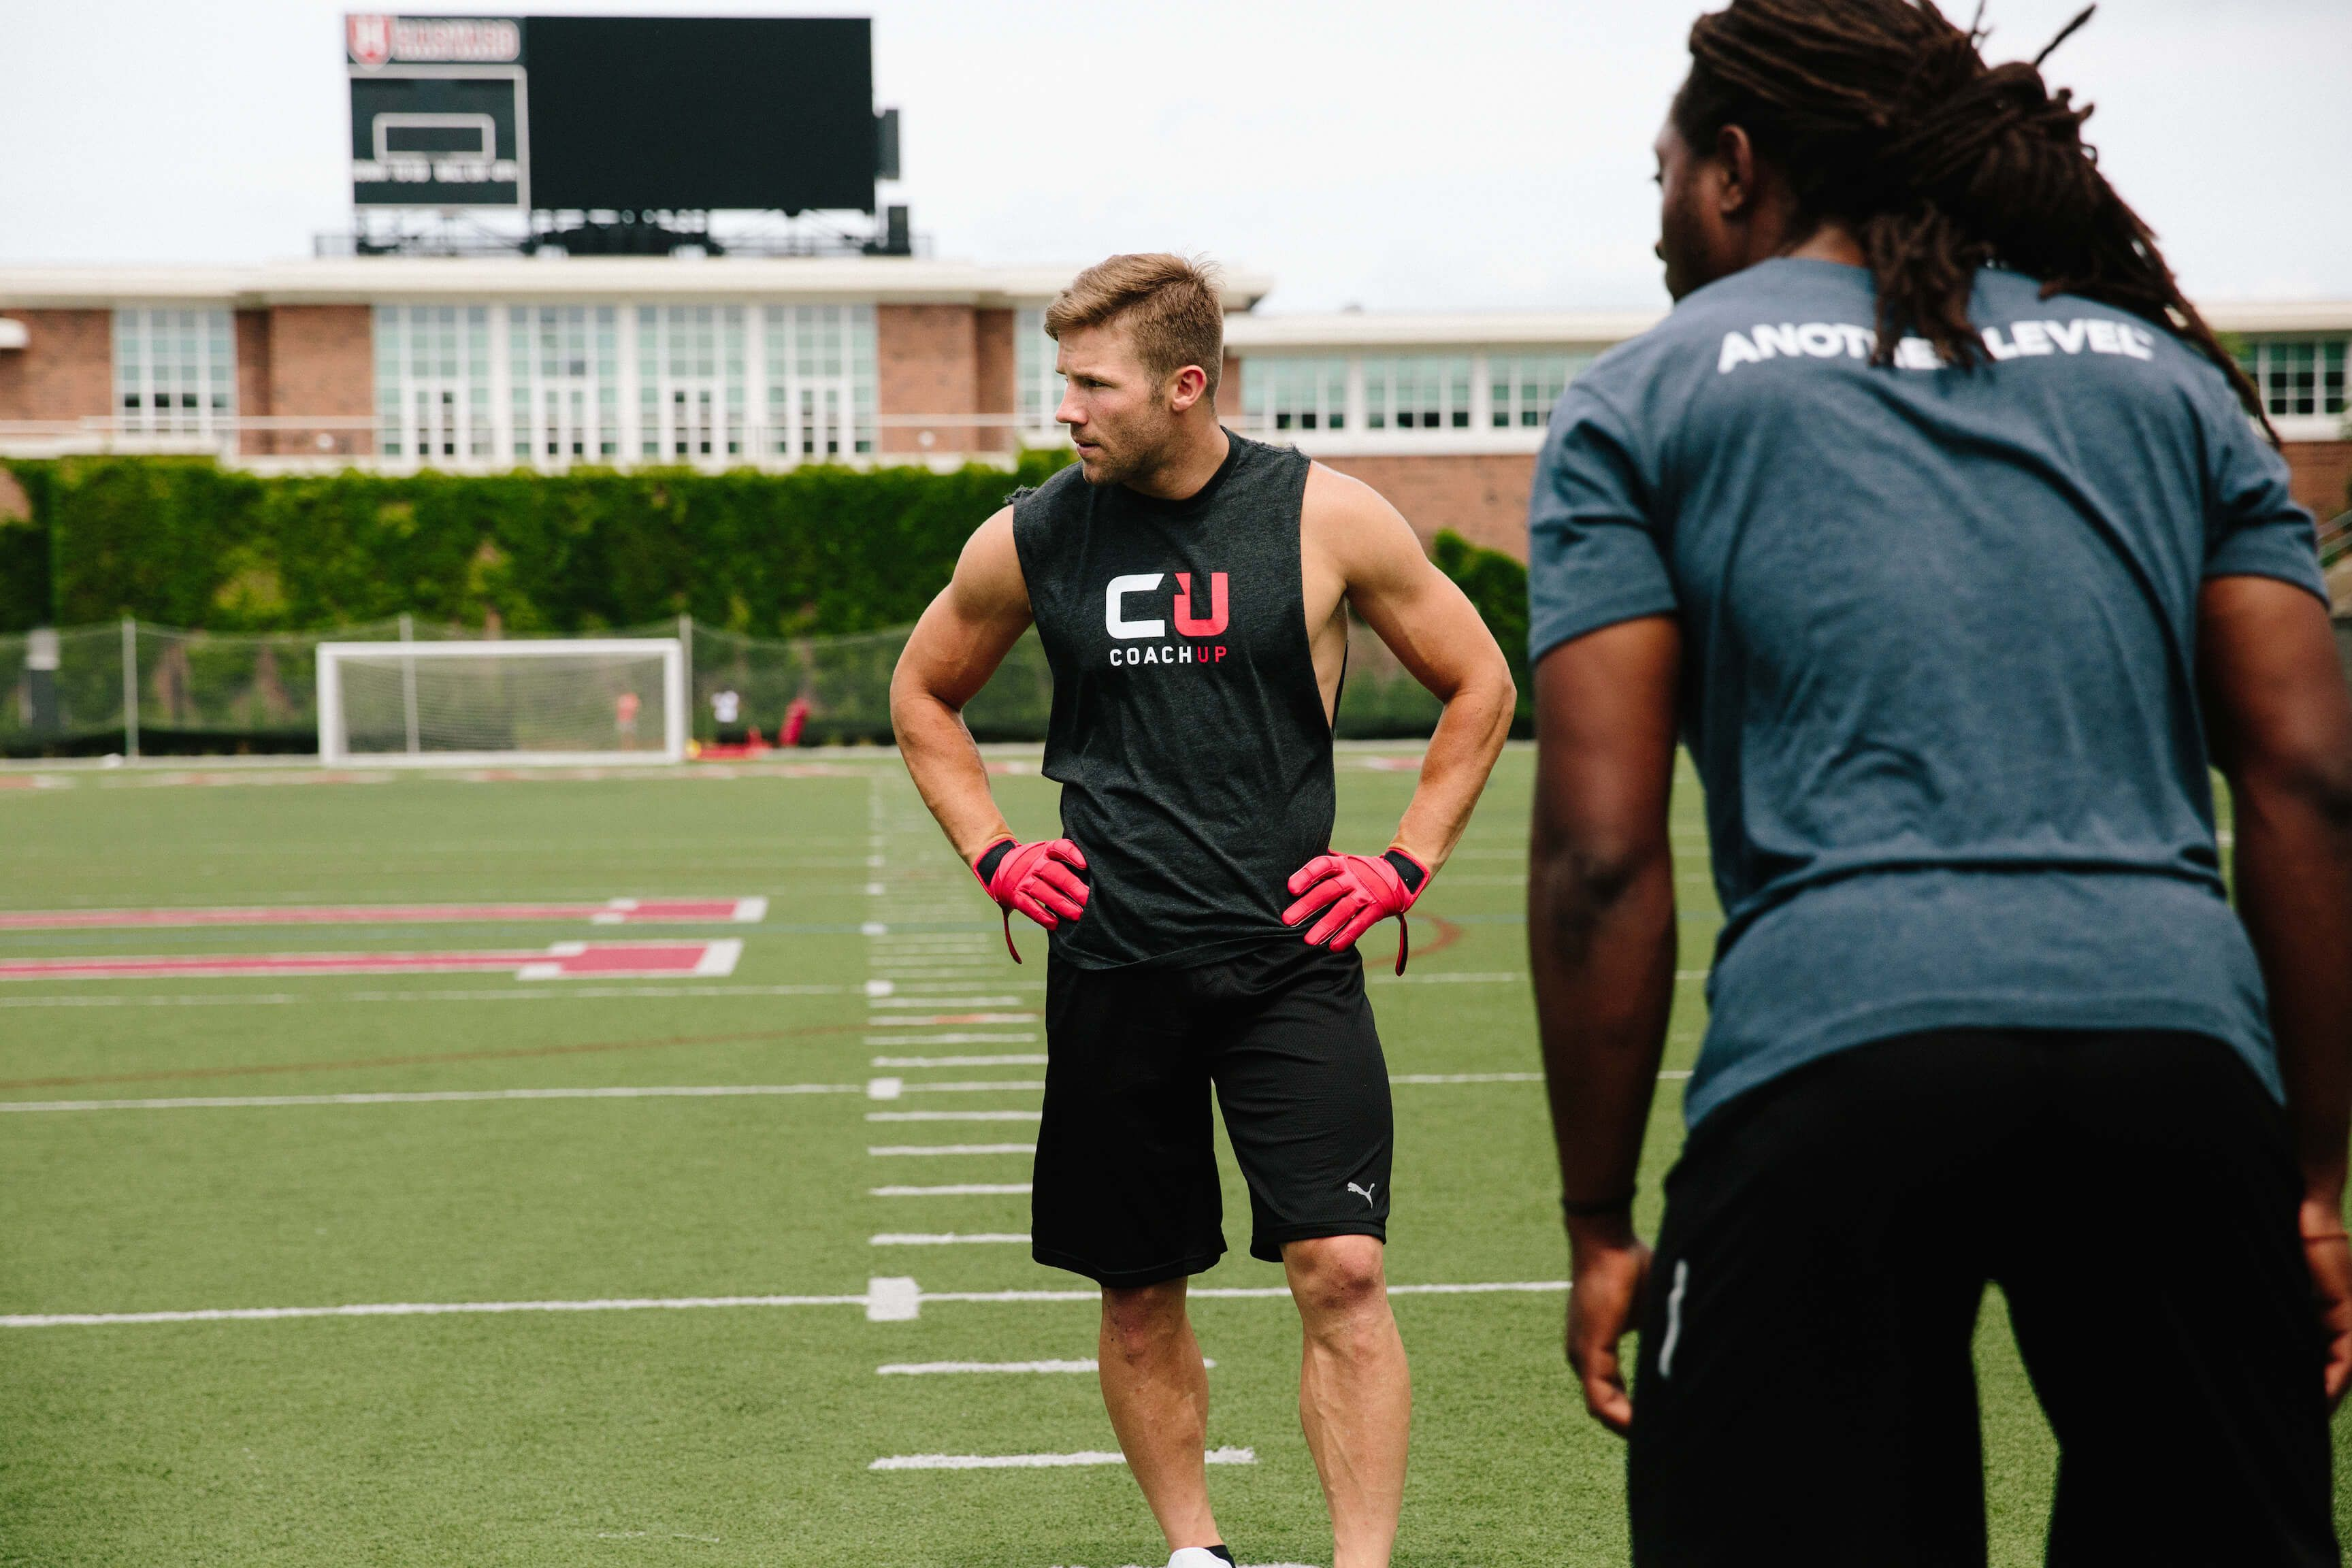 Coachup Nation The Julian Edelman Guide To Working Out Like An Nfl Wide Receiver Julian Edelman Edelman New England Patriots